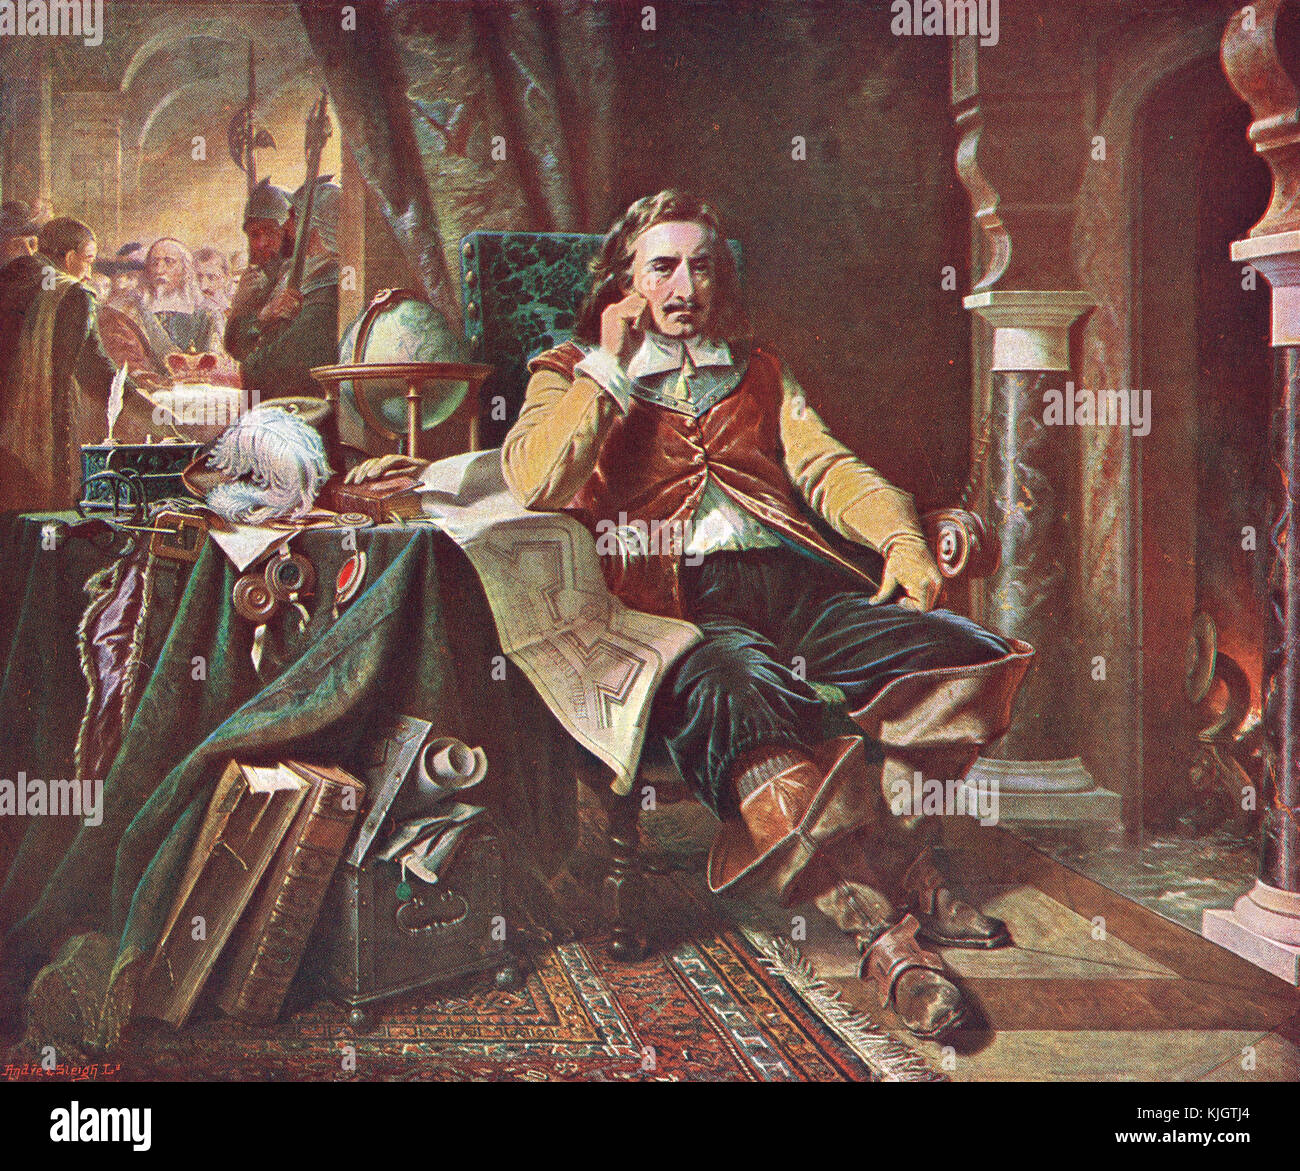 Oliver Cromwell refusing the Crown of England, 1657 - Stock Image